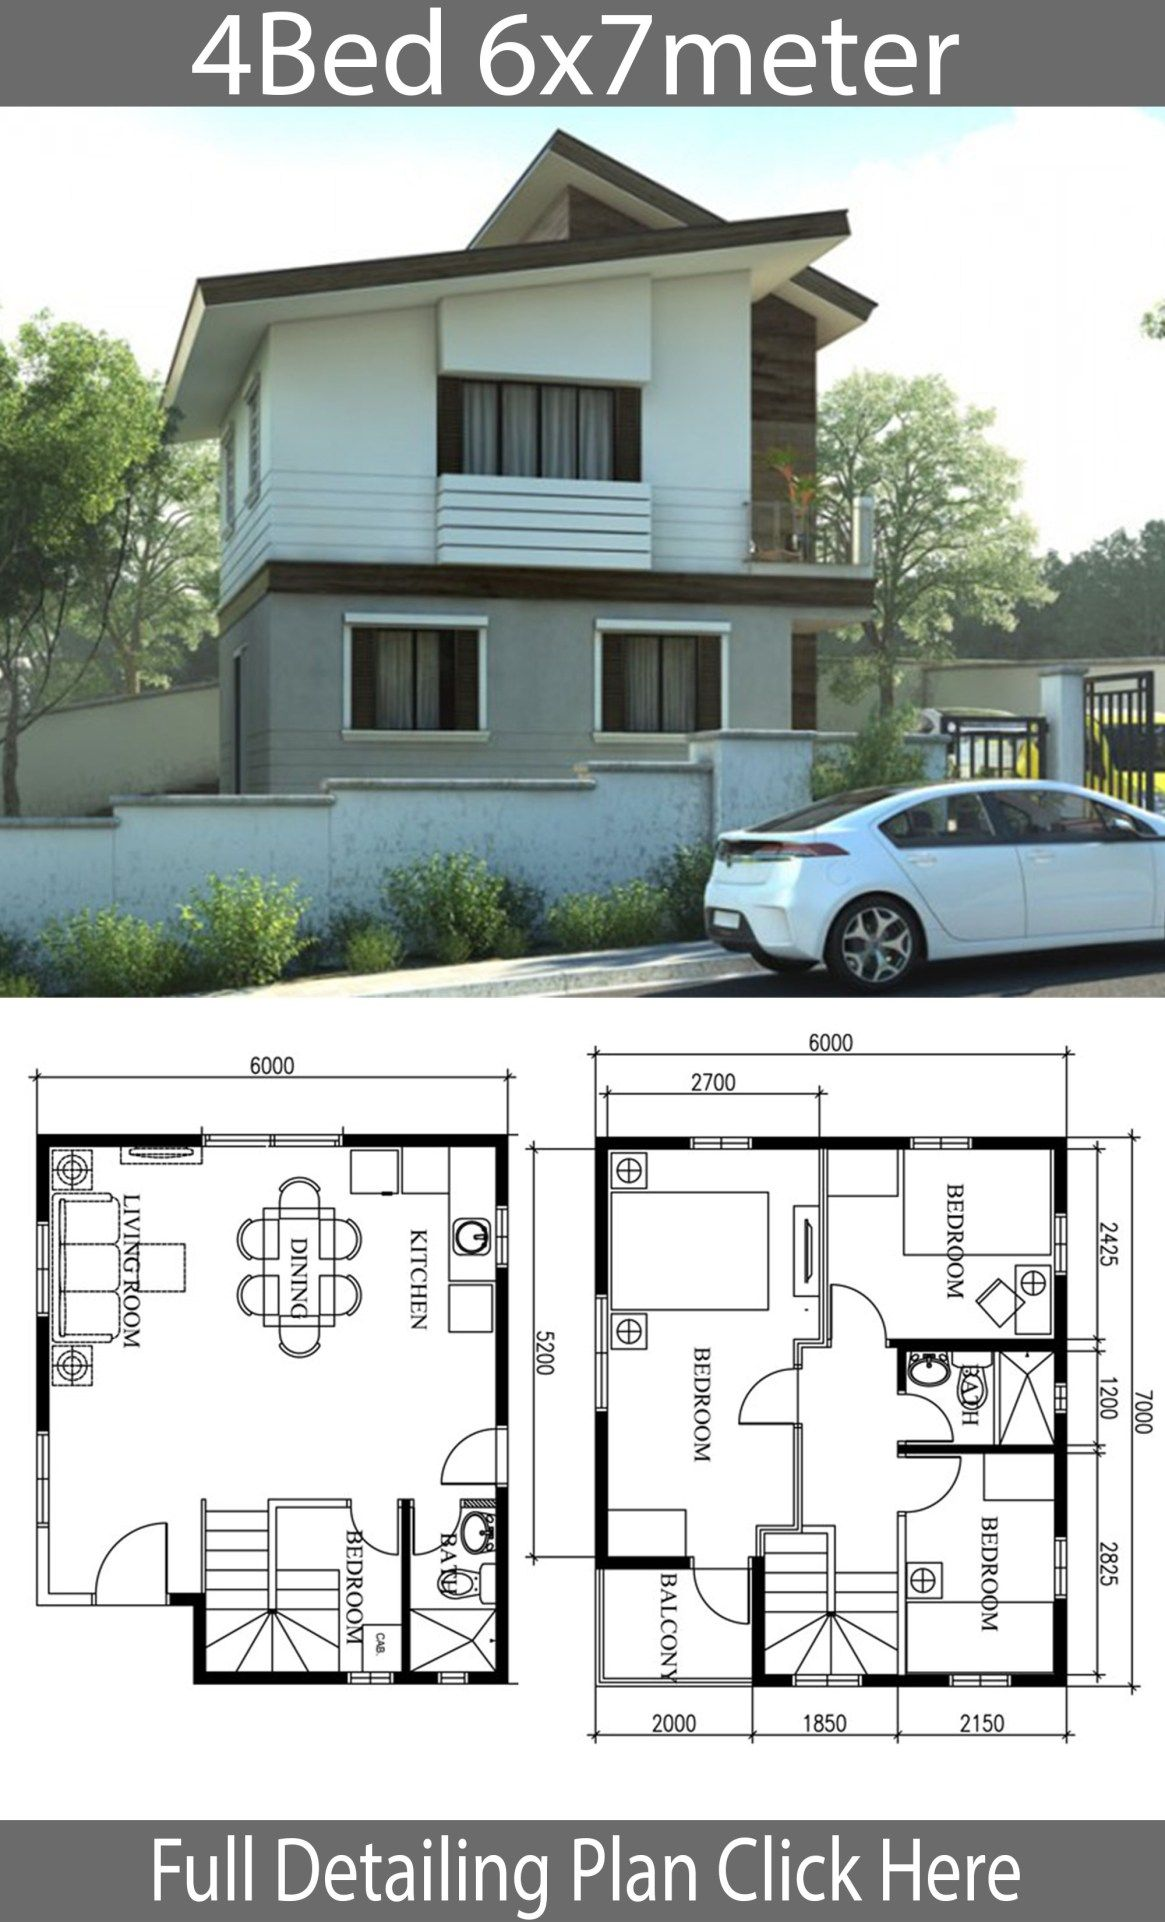 Small Home Design Plan 6x7m With 4 Bedrooms Home Design With Plansearch Small House Design Home Design Plan Architecture House